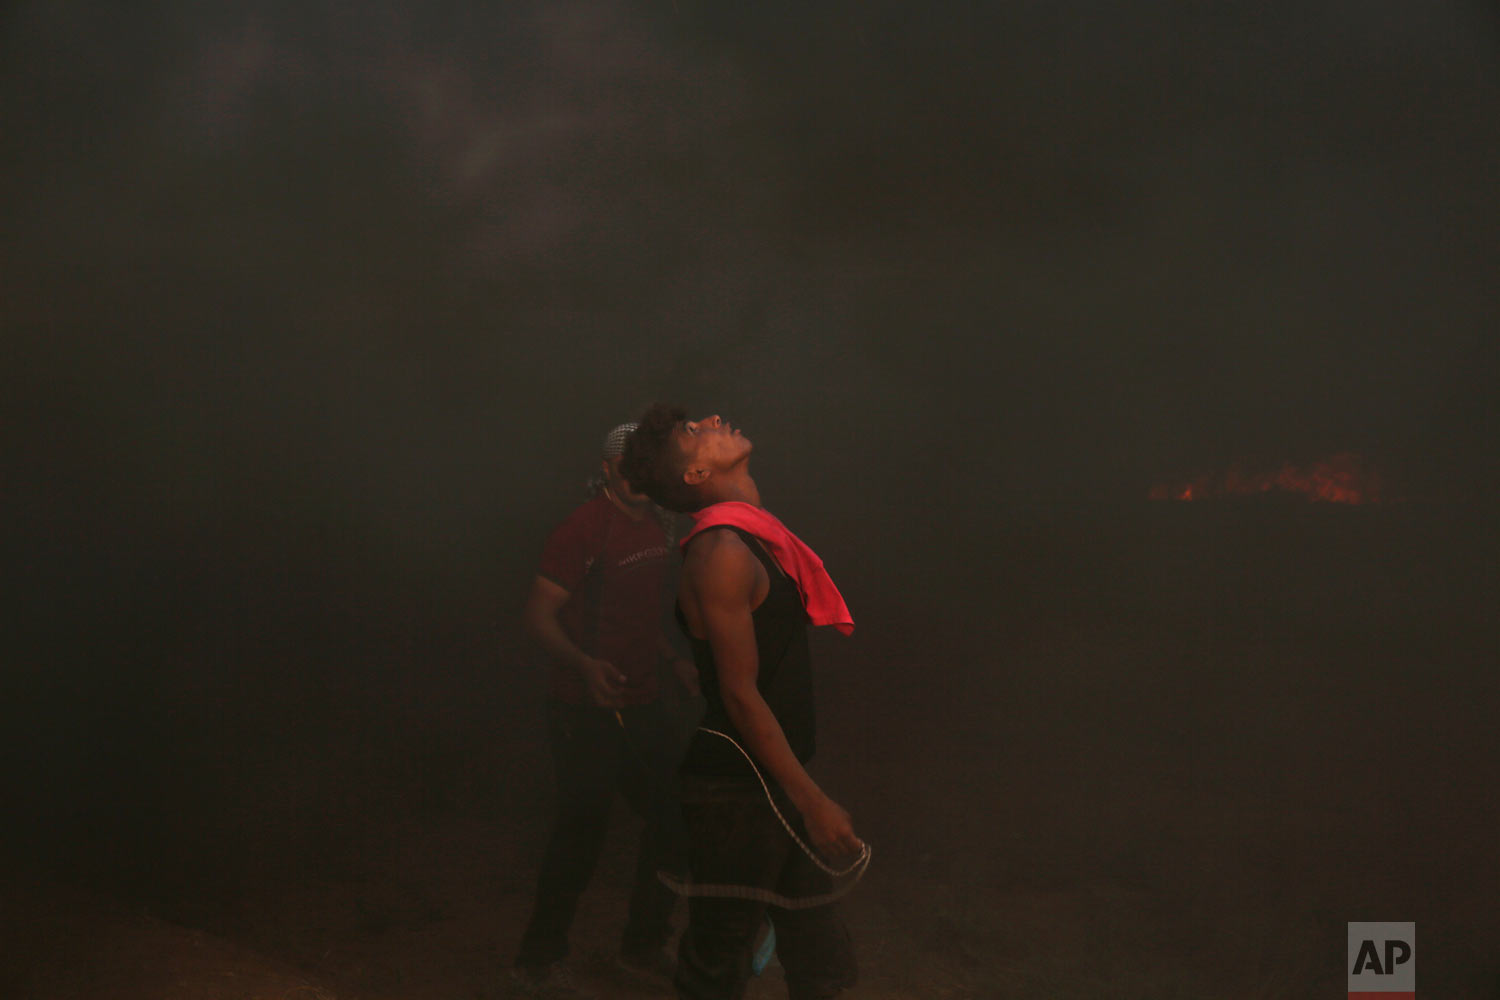 Protesters burn tires near the fence of the Gaza Strip border with Israel, during a protest east of Gaza City, Friday, Aug. 31, 2018. Gaza's Health Ministry says Israeli gunfire wounded about 80 Palestinians at the weekly protest along the border with Israel. Senior Hamas leader Khalil al-Hayya has said the weekly protests would only stop when Israel lifts its siege on Gaza. (AP Photo/Adel Hana)